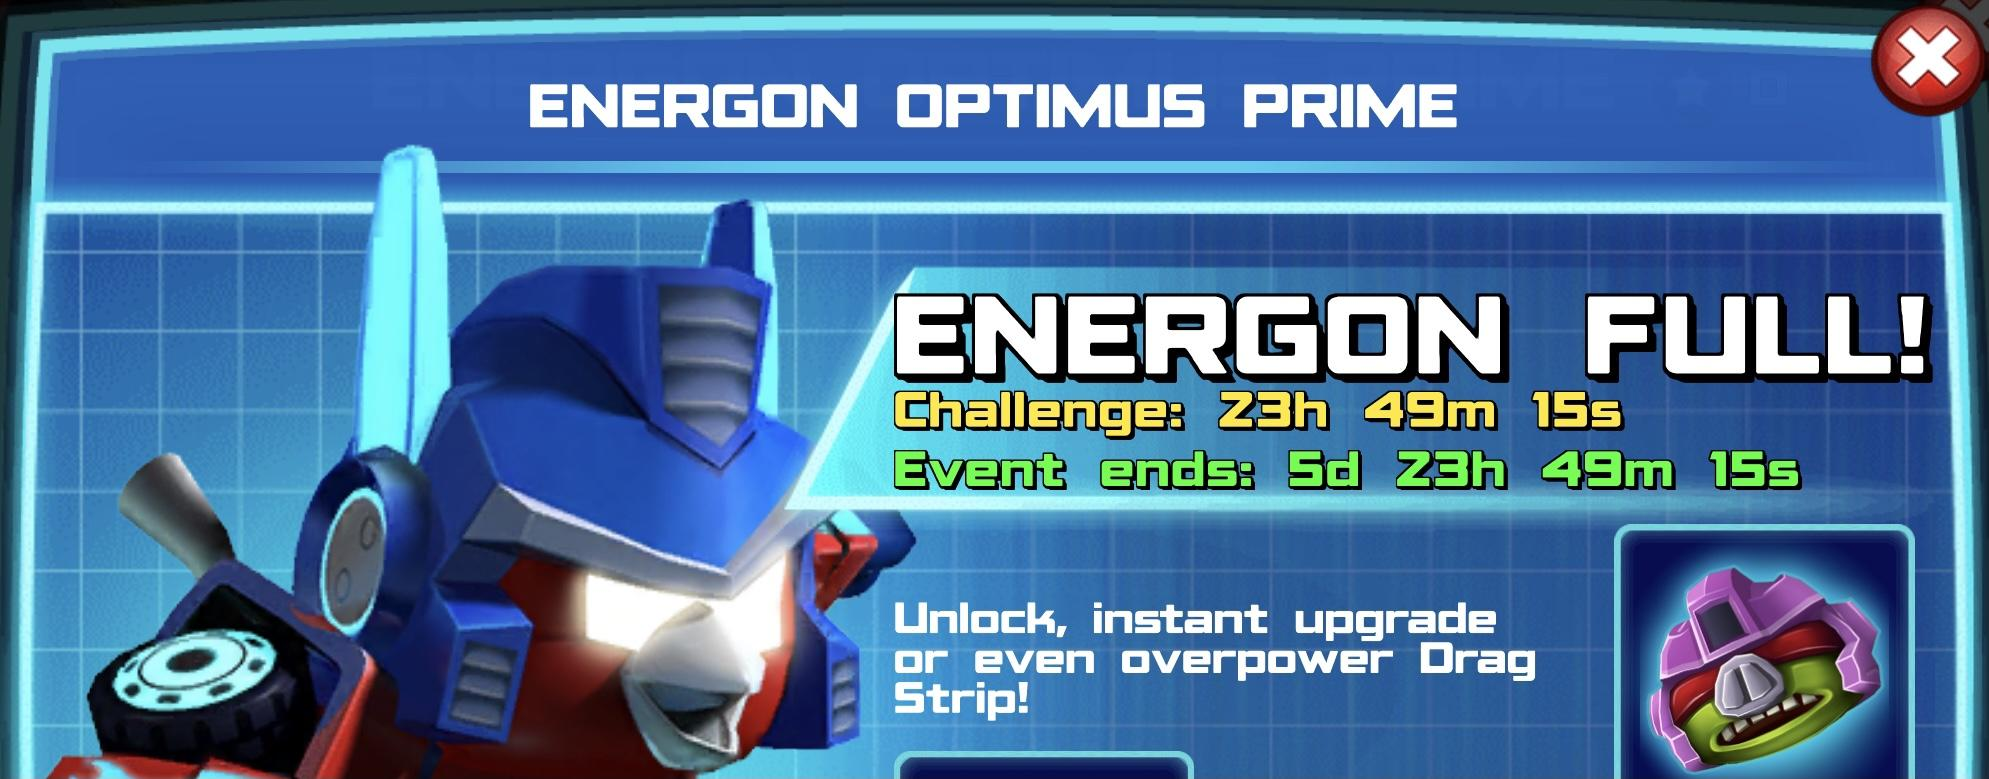 The event banner for Energon Optimus Prime